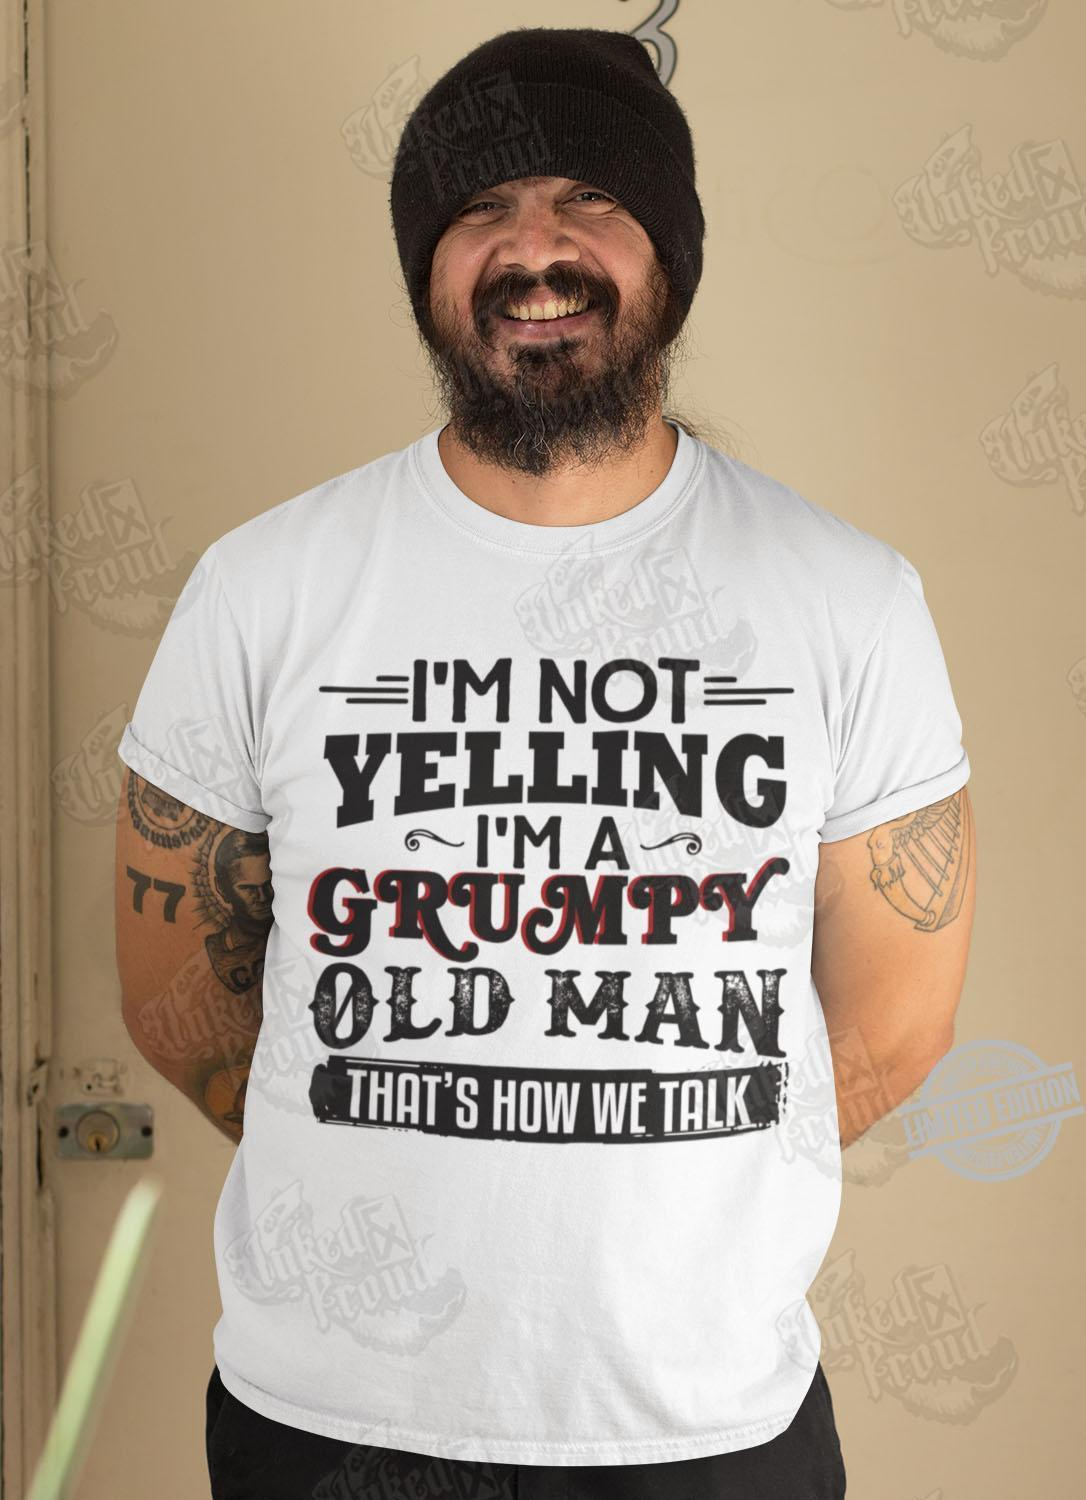 I'm Not Yelling I'm Grumpy Old Man That's How We Talk Shirt